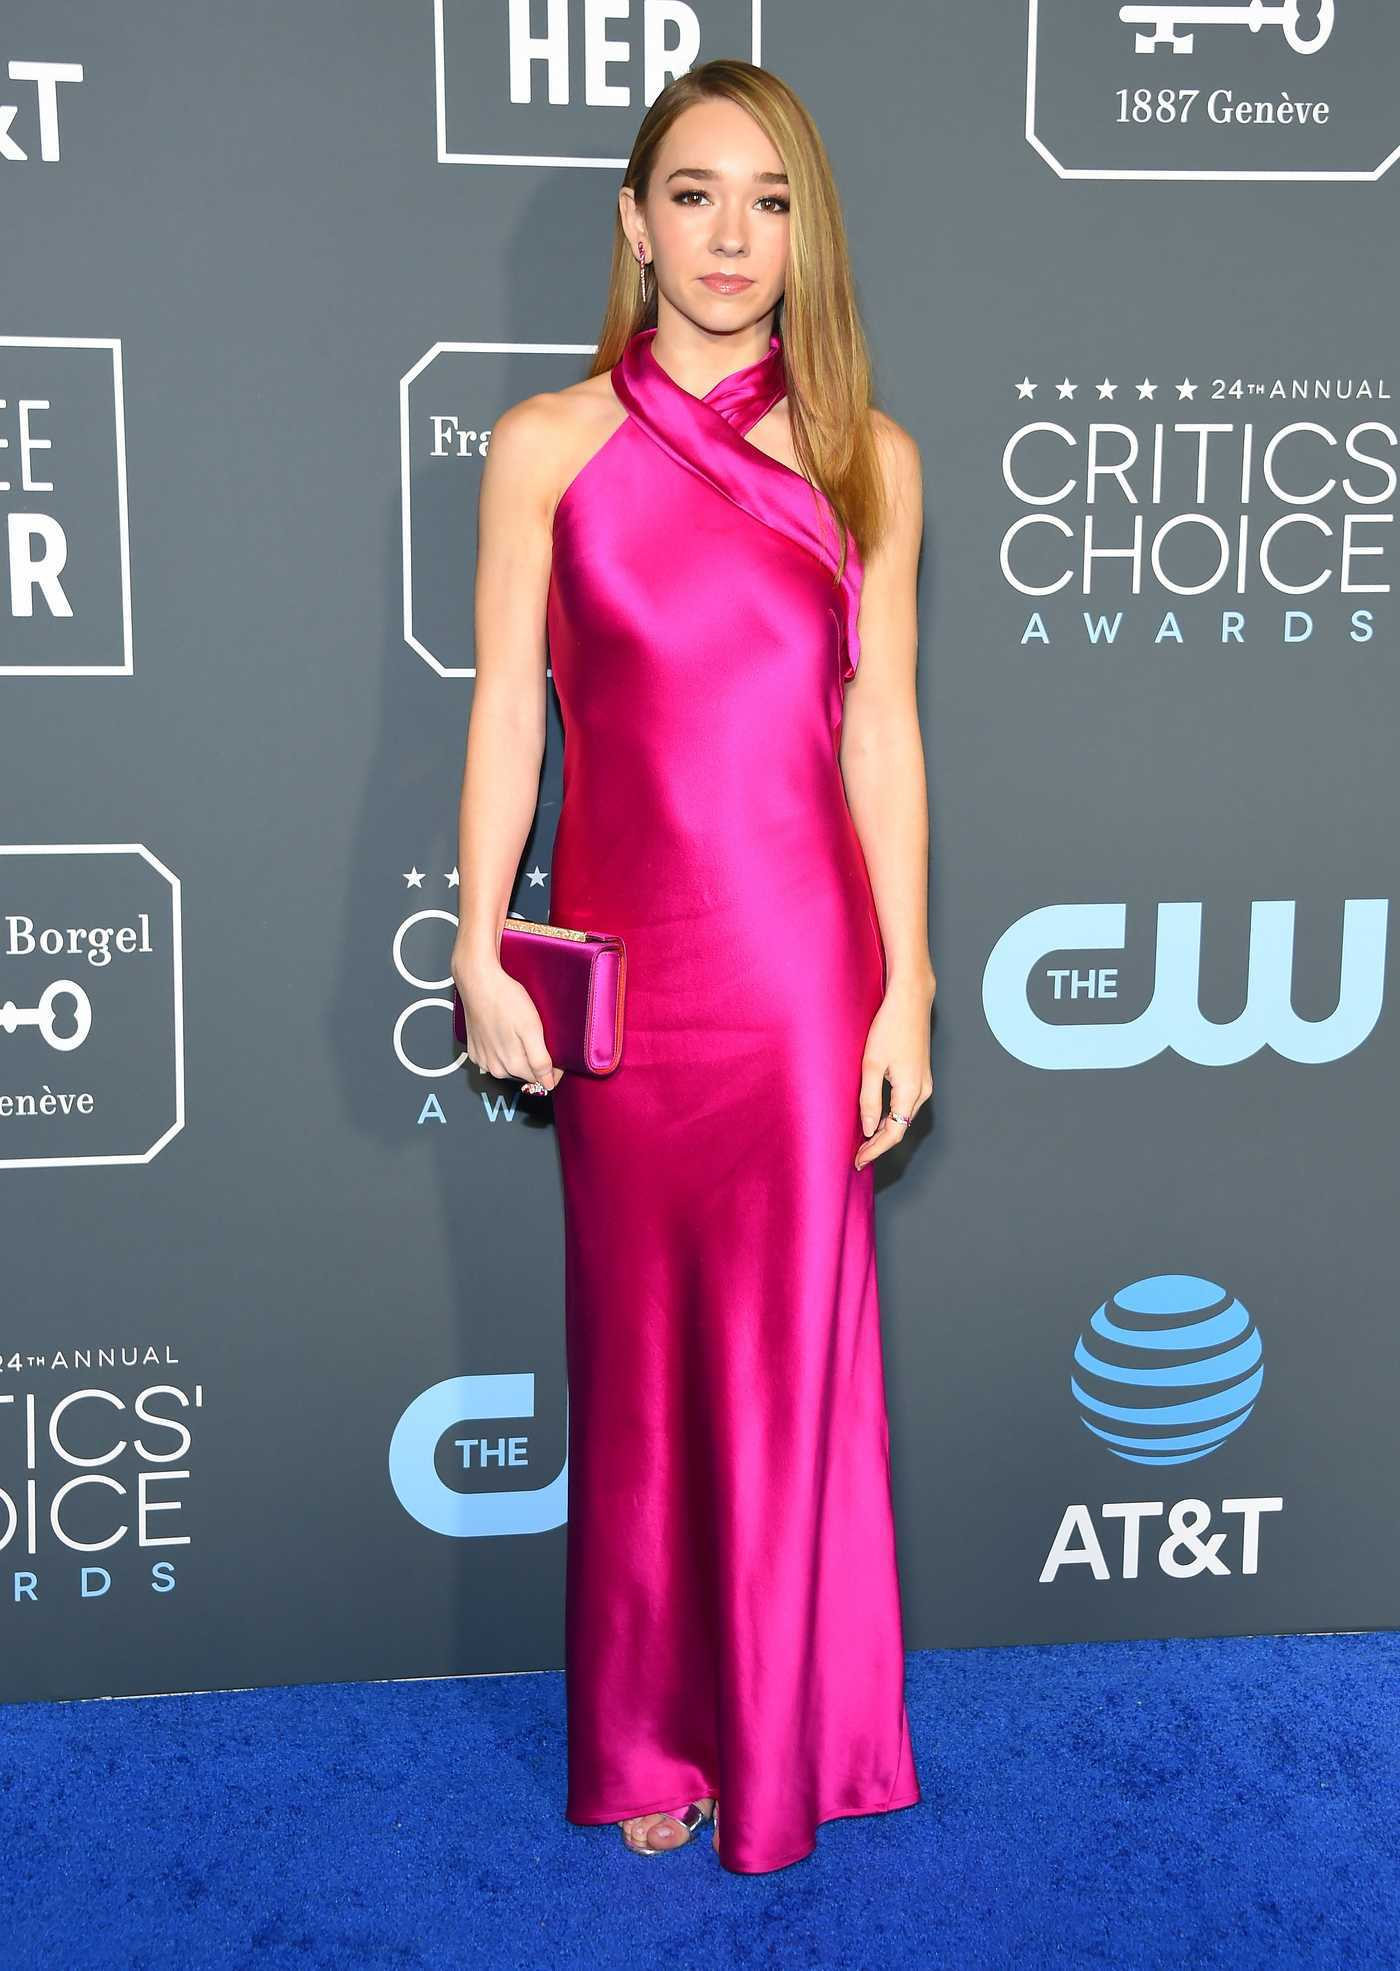 Holly Taylor Attends the 24th Annual Critics' Choice Awards at Barker Hangar in Santa Monica 01/13/2019